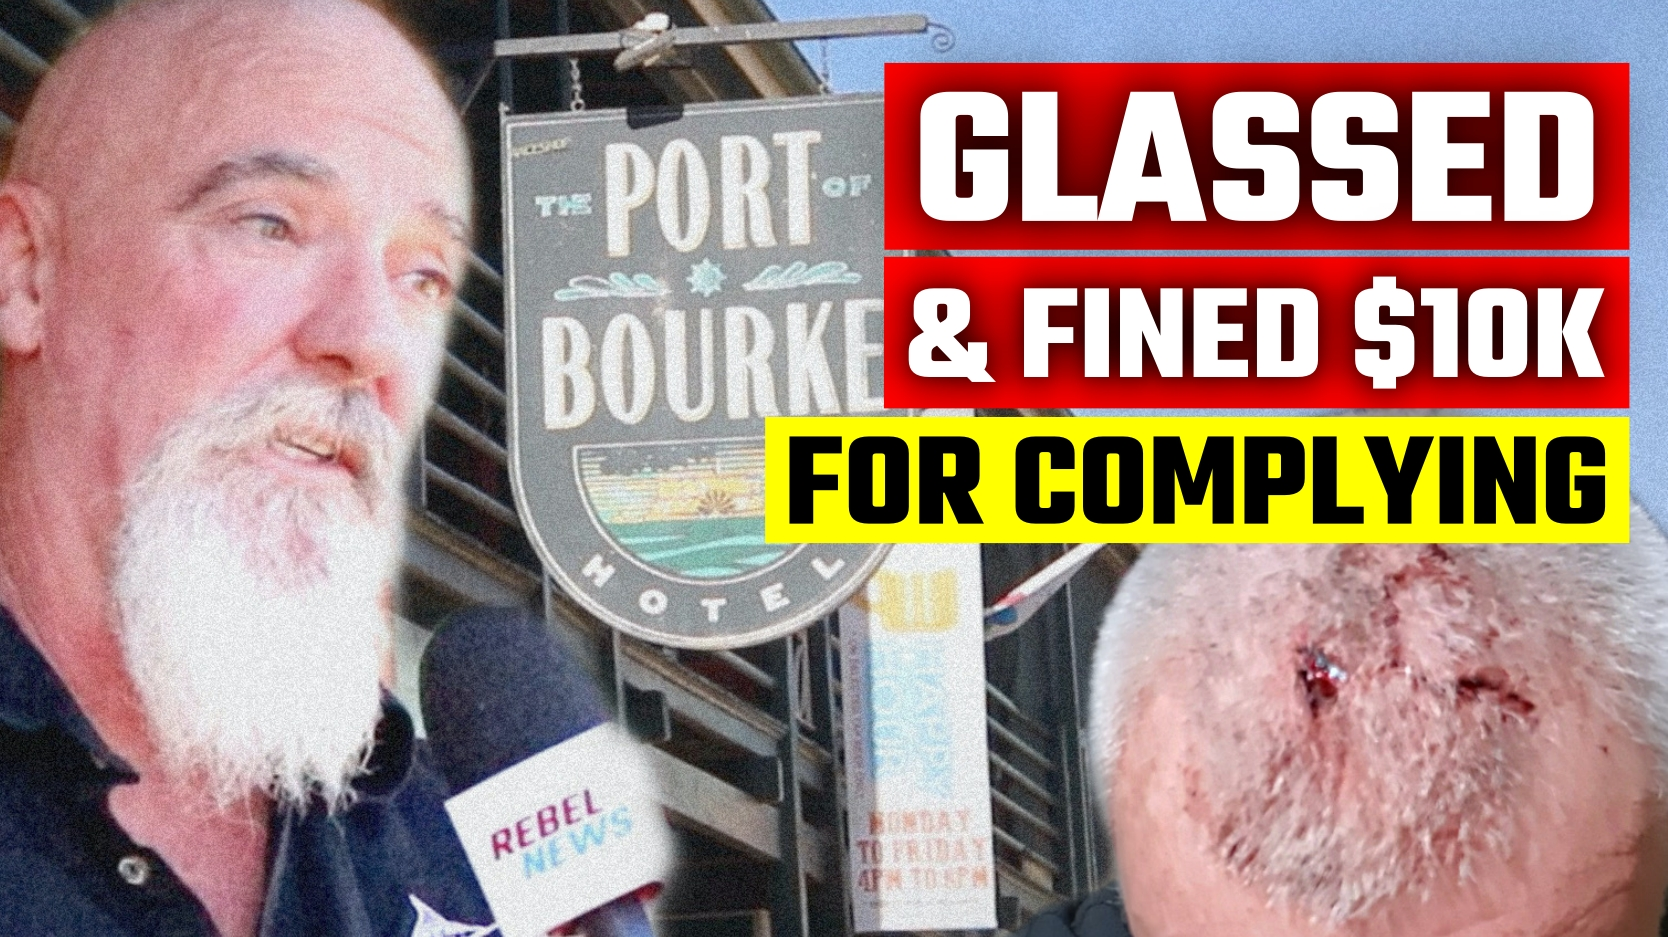 Outback publican speaks out after being ATTACKED and FINED for Covid rules